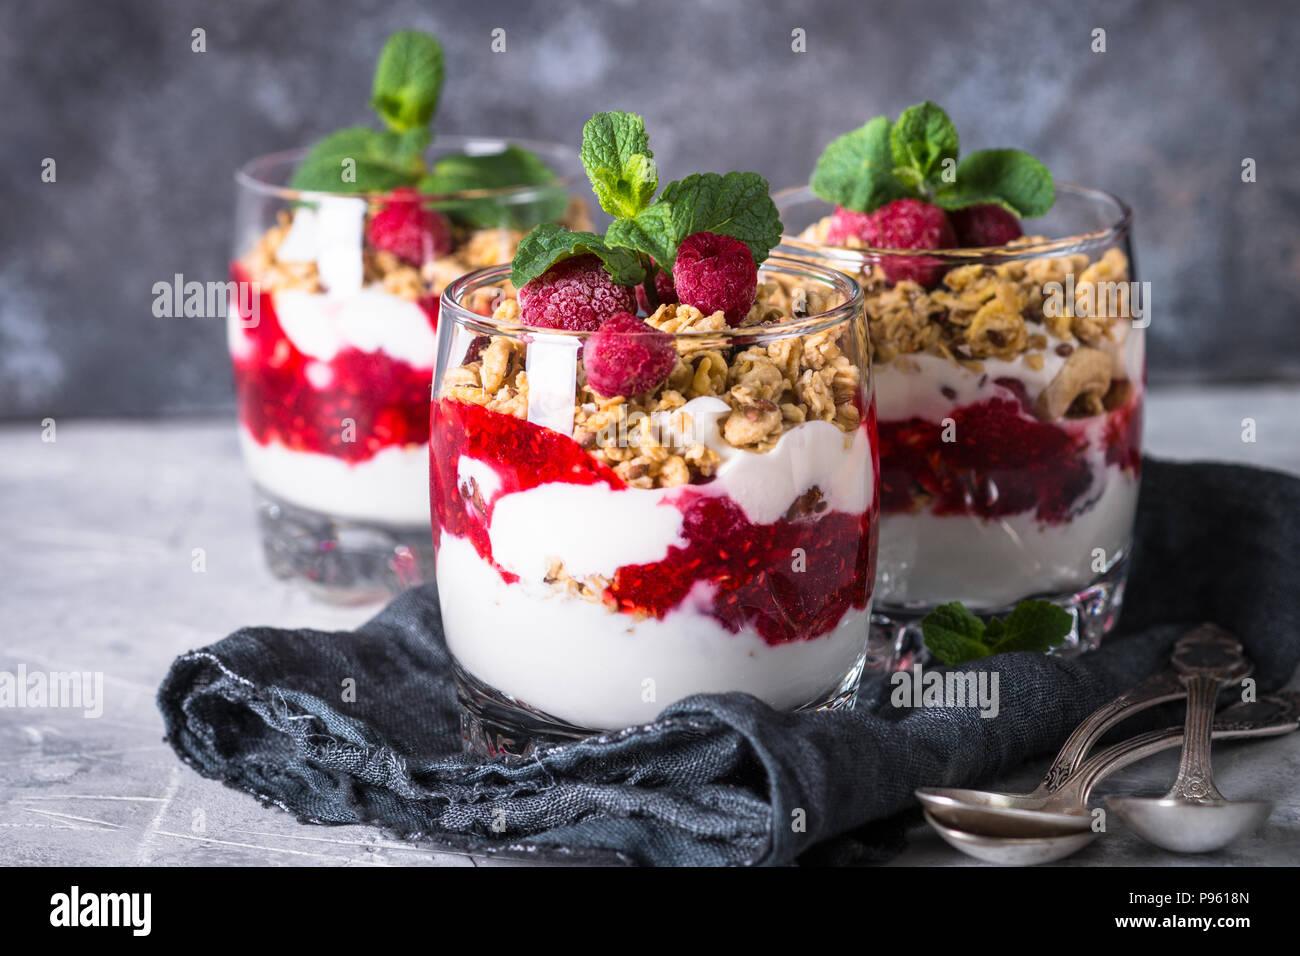 Healthy layered dessert with yogurt, granola, jam and raspberries in glass. - Stock Image